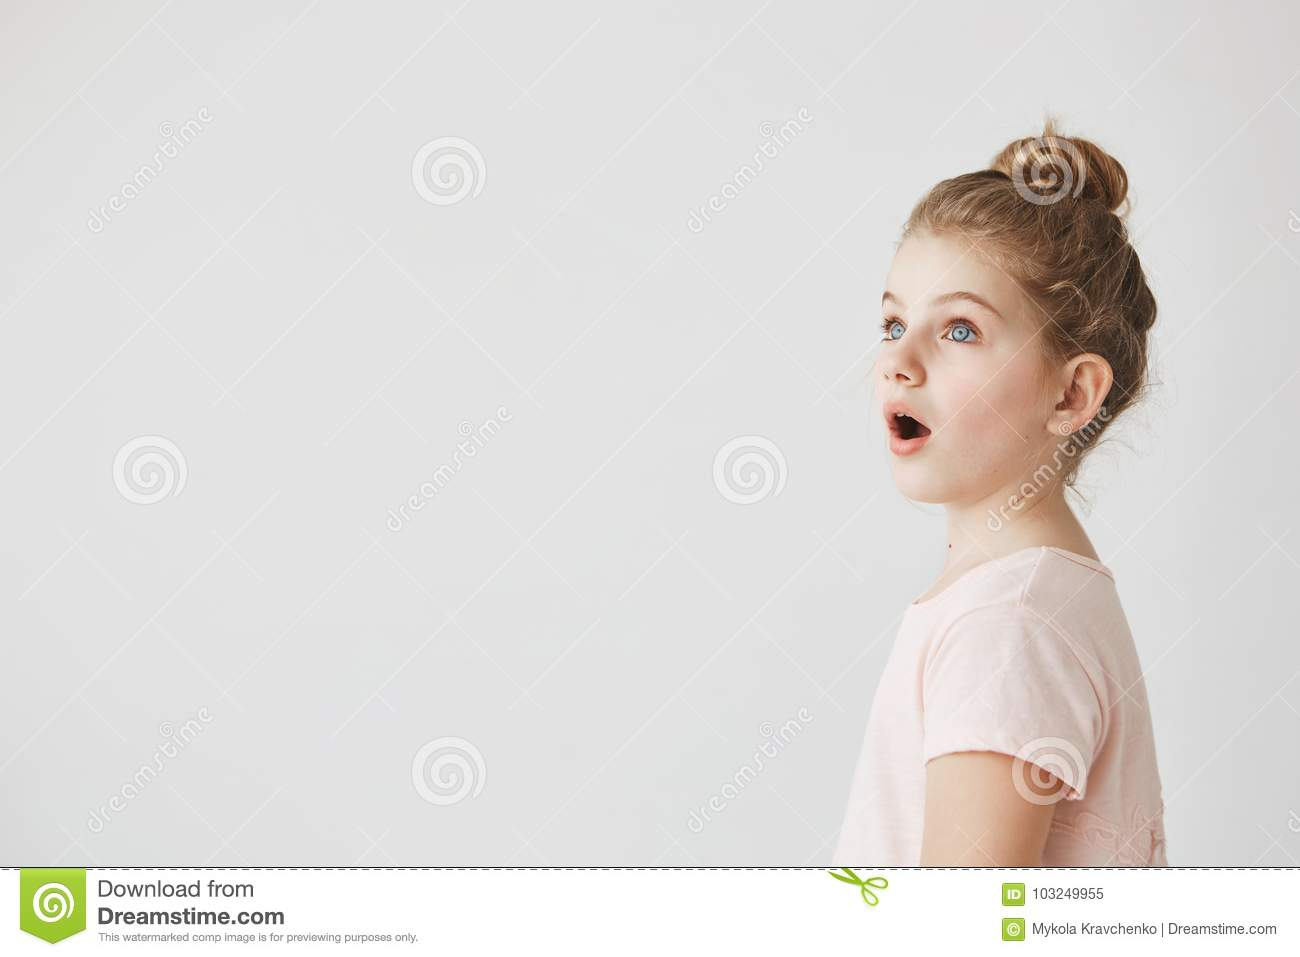 Little Funny Girl With Blonde Hair In Bun Standing With Open Mouth On Street Being